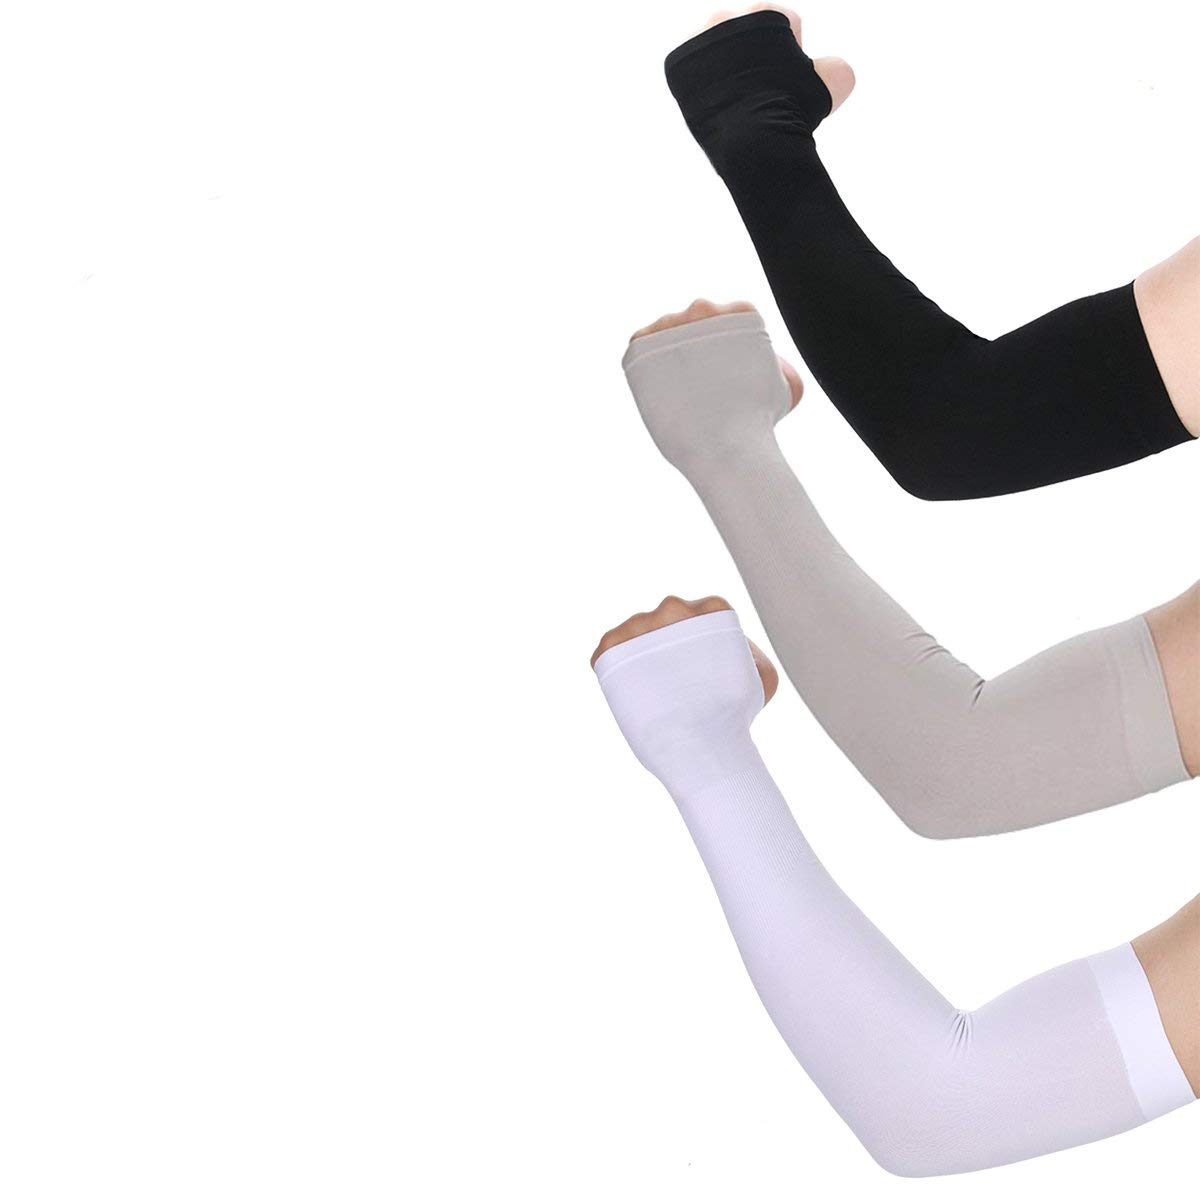 UV Protection Cooling Arm Sleeves- UPF 50 Sun Sleeves Arm Cover Sleeves